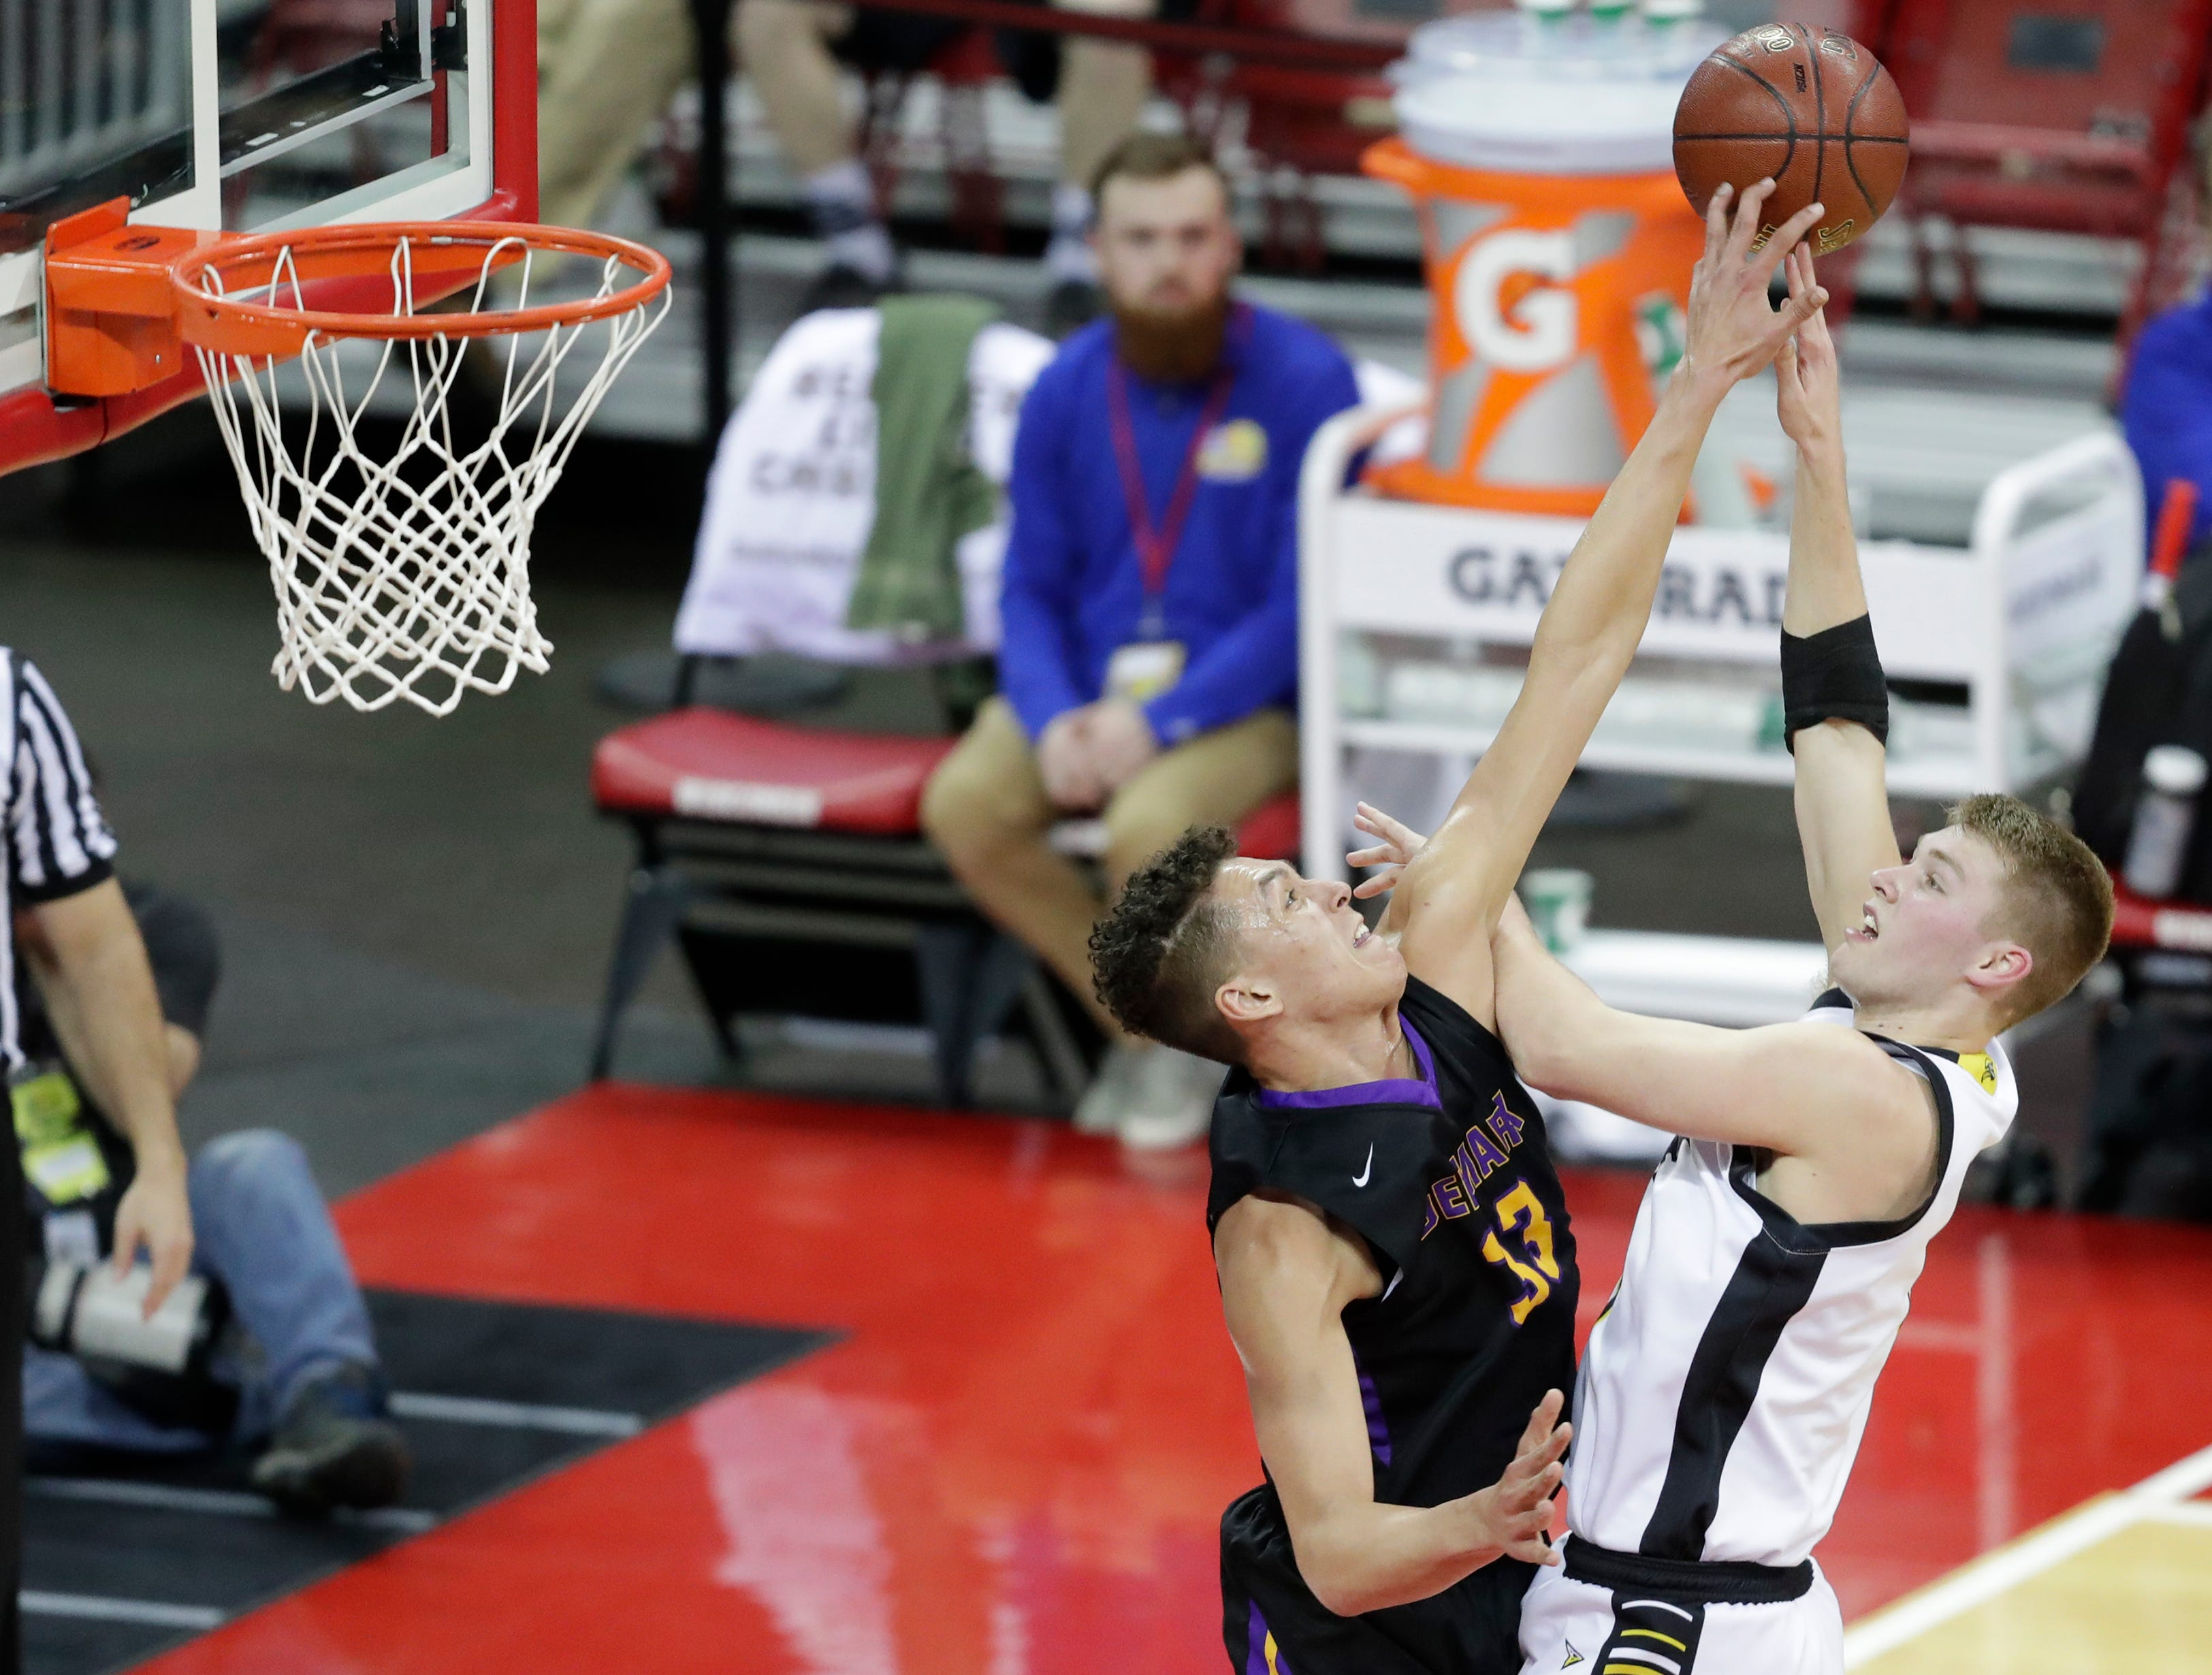 Denmark High School's Patrick Suemnick (33) blocks a shot from Waupun High School's Marcus Domask (1) during their WIAA Division 3 boys basketball state semifinal at the Kohl Center Thursday, March 14, 2019,in Madison, Wis.